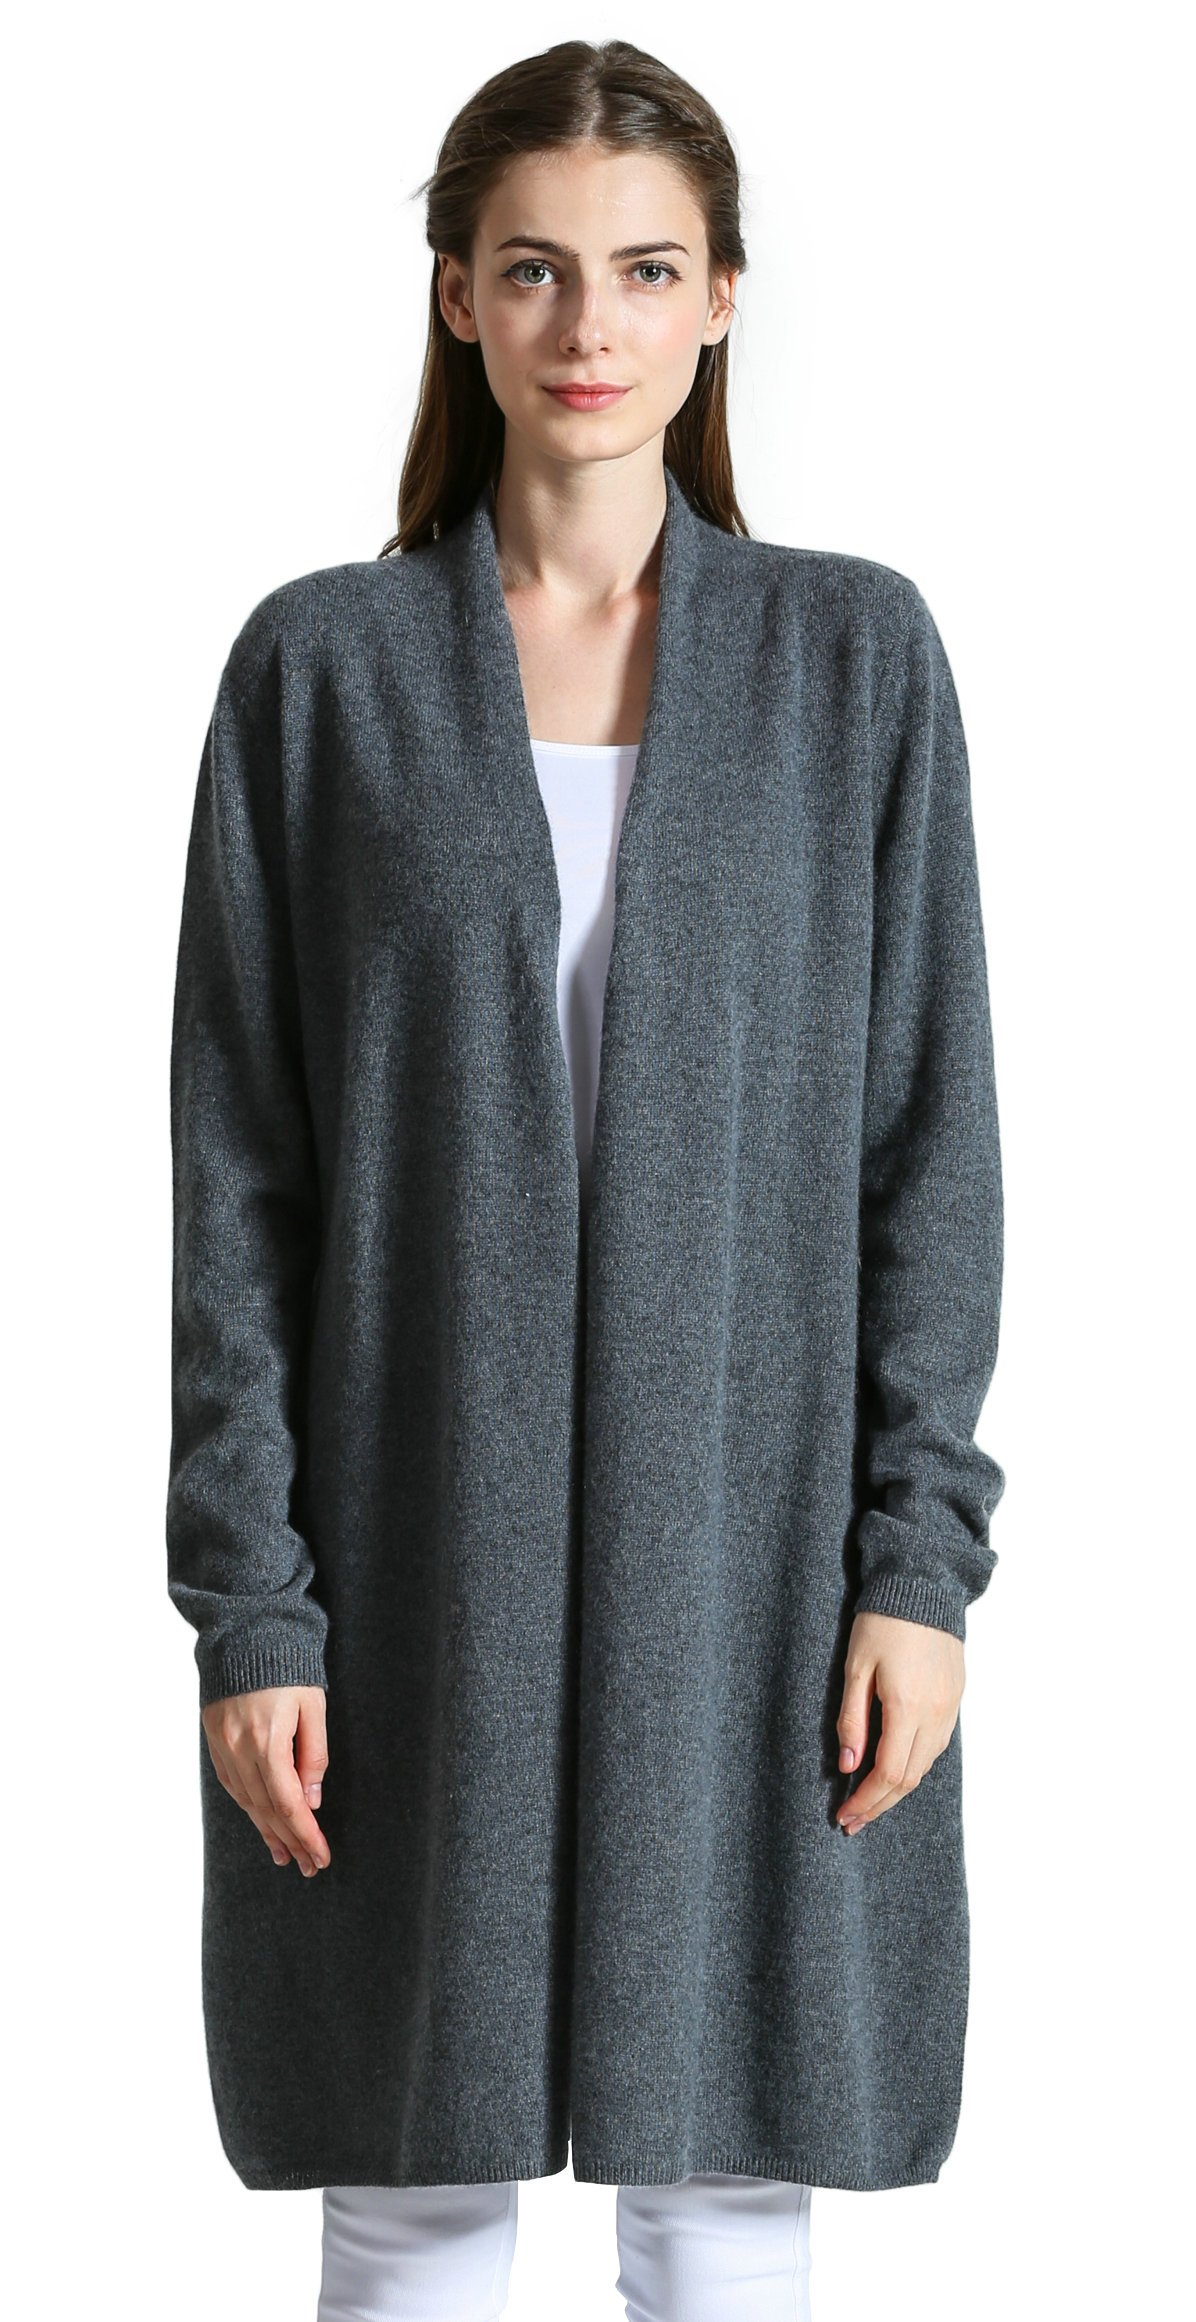 DYS CASHMERE Women's 100% Cashmere Long Style Open Frond Long Sleeve Sweater (Grey)